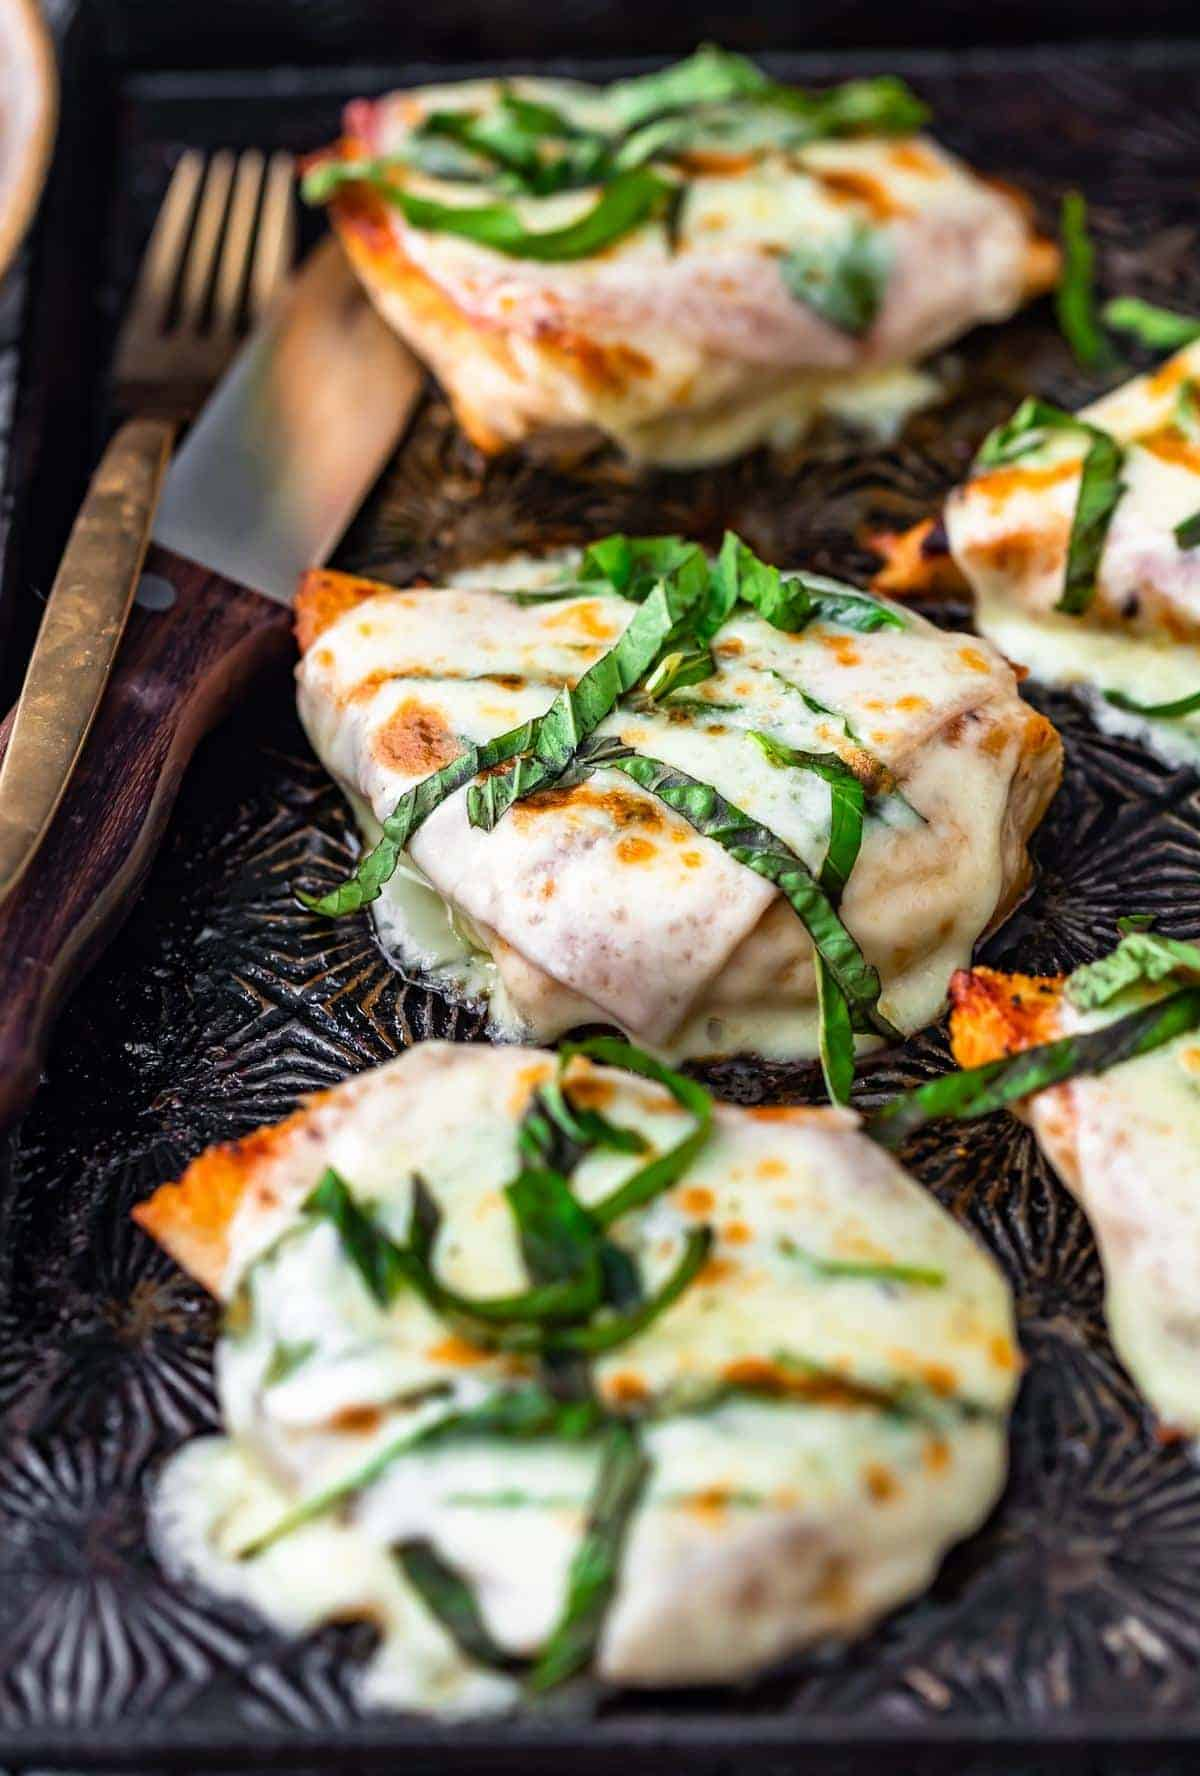 Cheesy Chicken Prosciutto is a delicious and simple recipe perfect for those busy weeknights. This easy chicken recipe consists of pan seared chicken, prosciutto ham, provolone cheese, and fresh basil. From start to finish, this Sheet Pan Prosciutto Chicken is made in under 30 minutes and is sure to please!